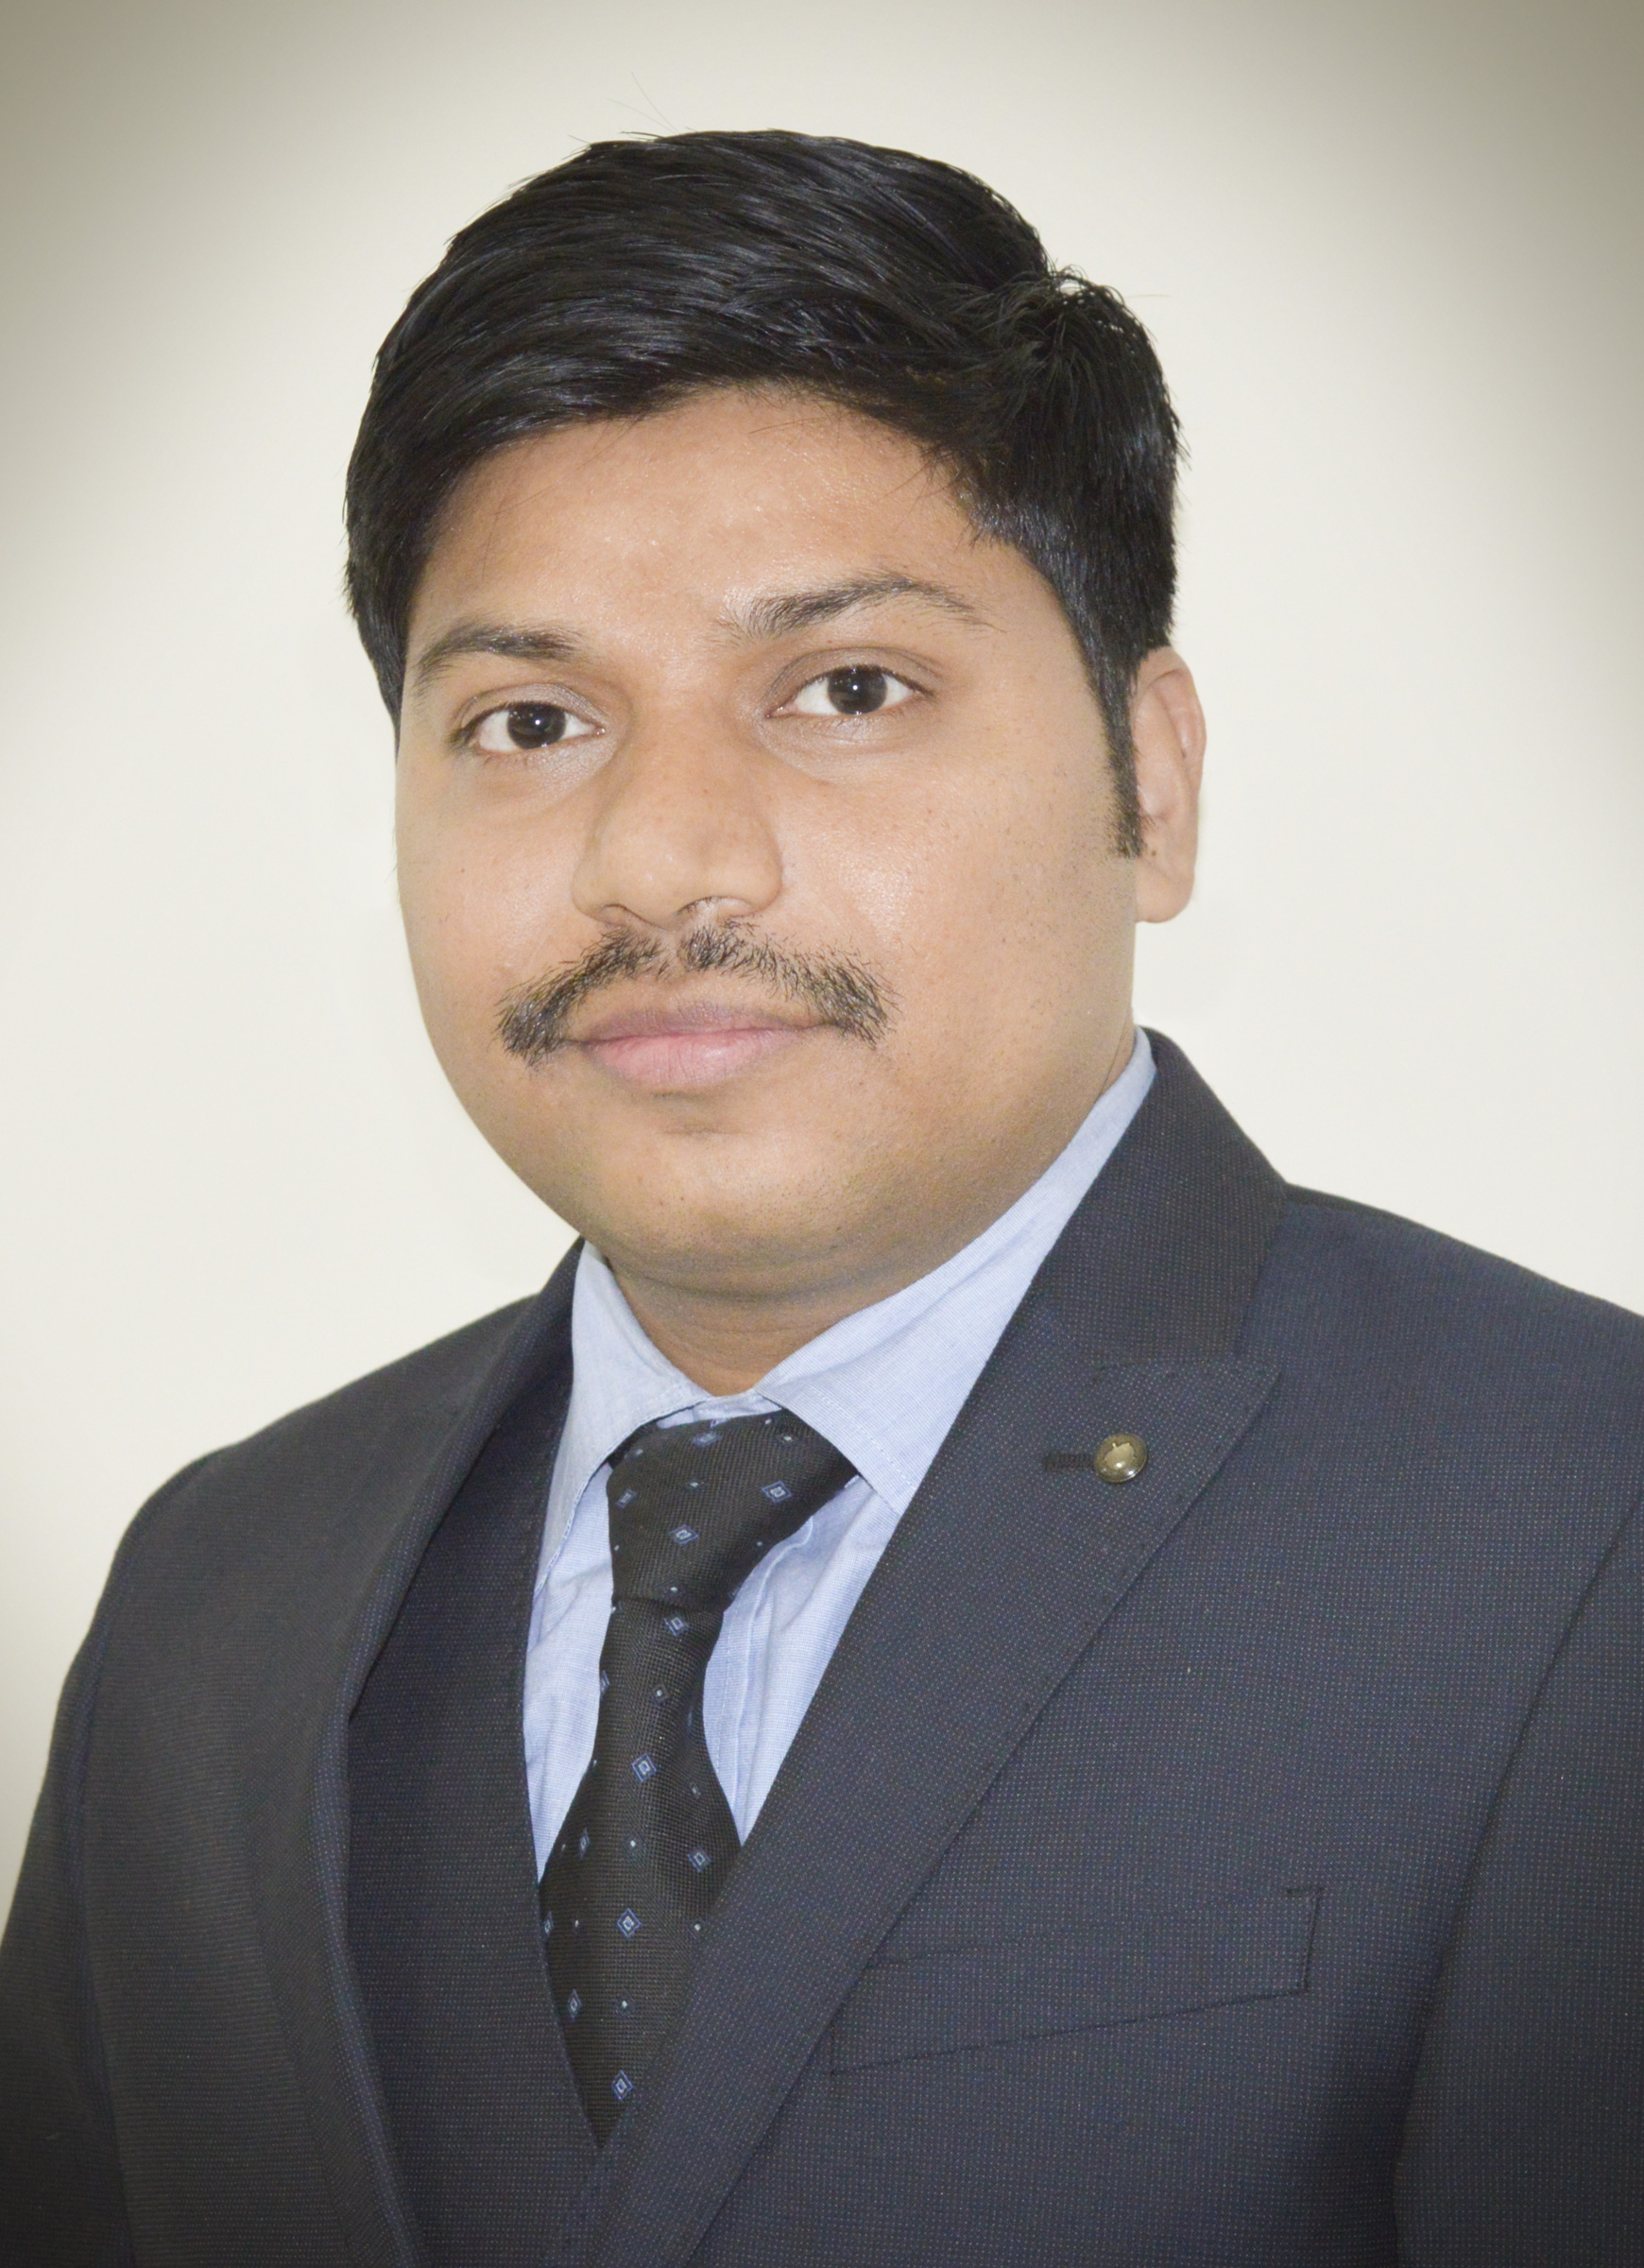 Nikhil Kaitwade, research manager for automotive and transportation at Future Market Insights, discusses how to best market the benefits of low rolling resistance tires to consumers